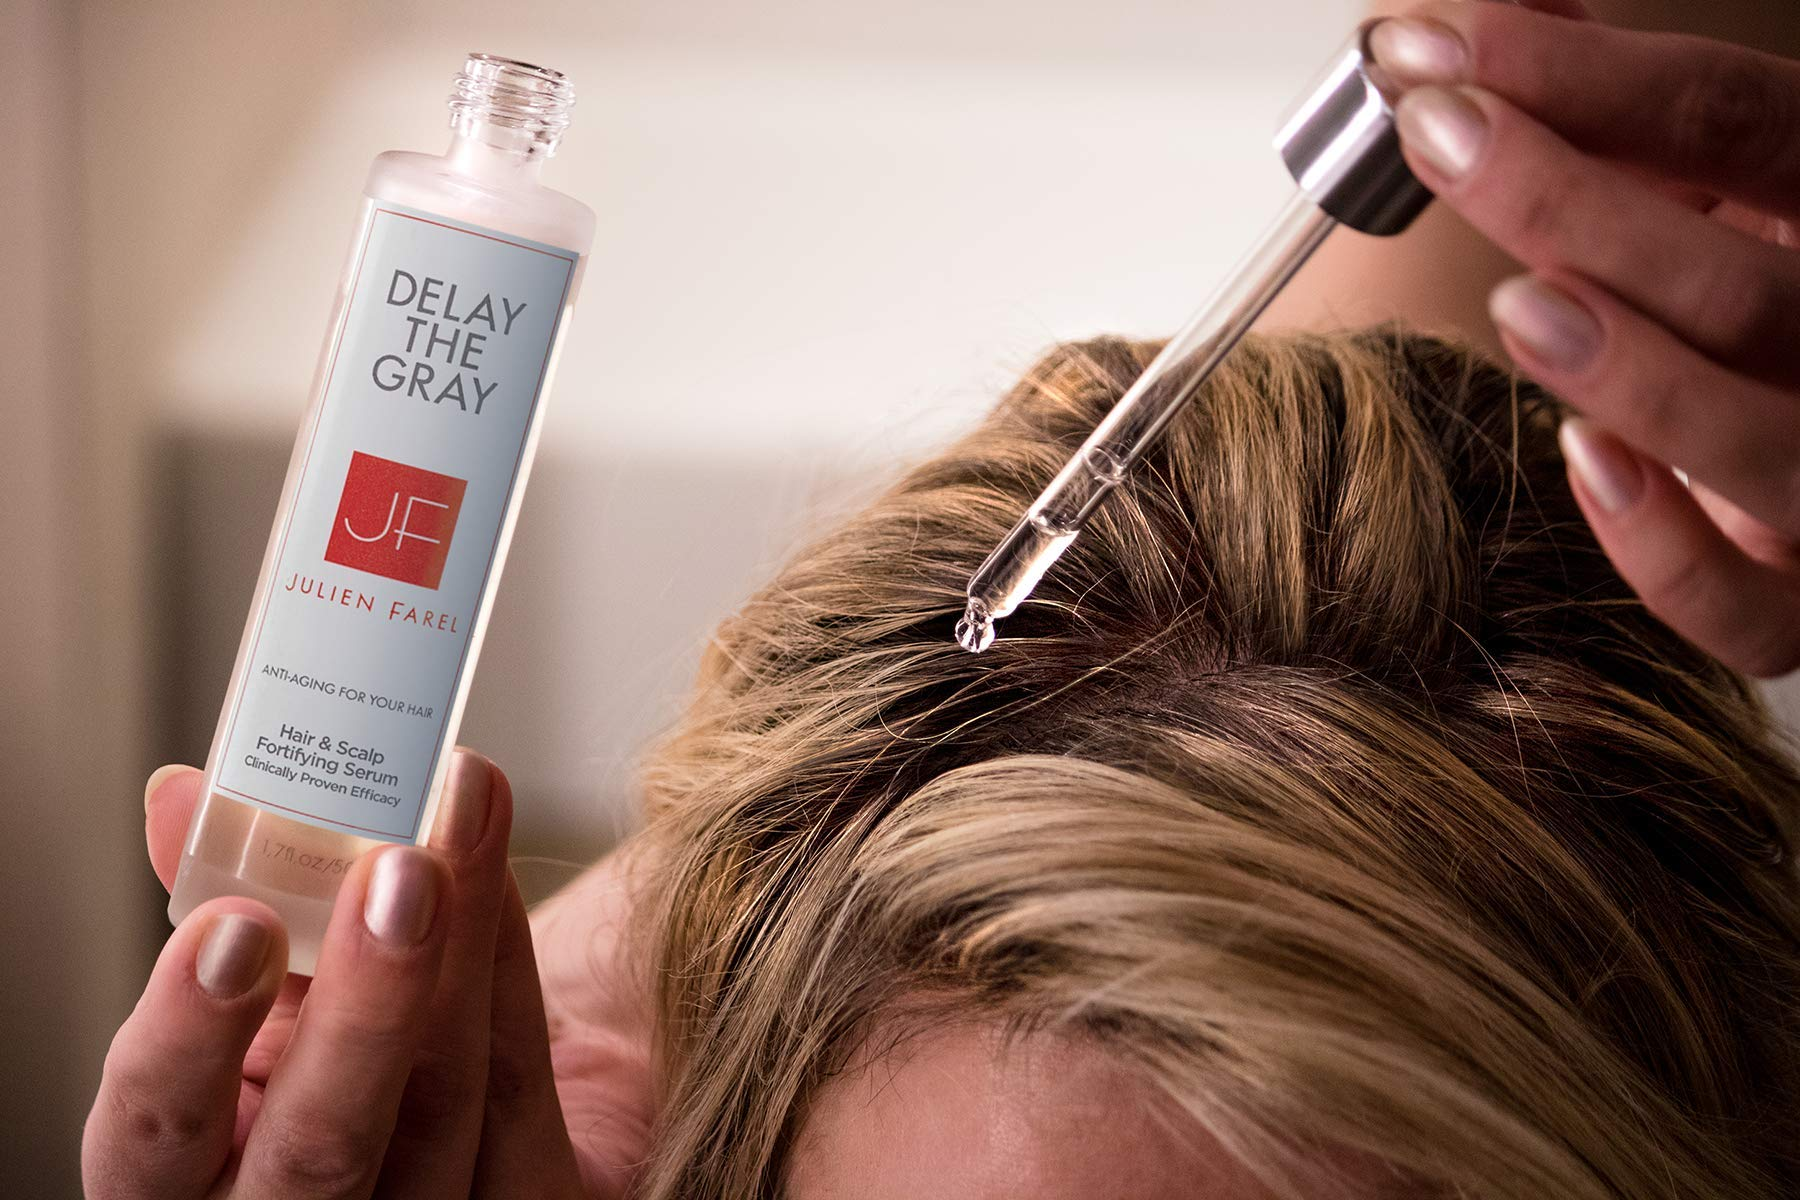 Julien Farel Magnifique Delay The Grey Hair & Scalp Serum, 1.7 Fl Oz – SLS & Paraben Free – Best for Normal, Fine, Thinning, Damaged and All Hair Types, As Seen on The View by Julien Farel Products (Image #2)